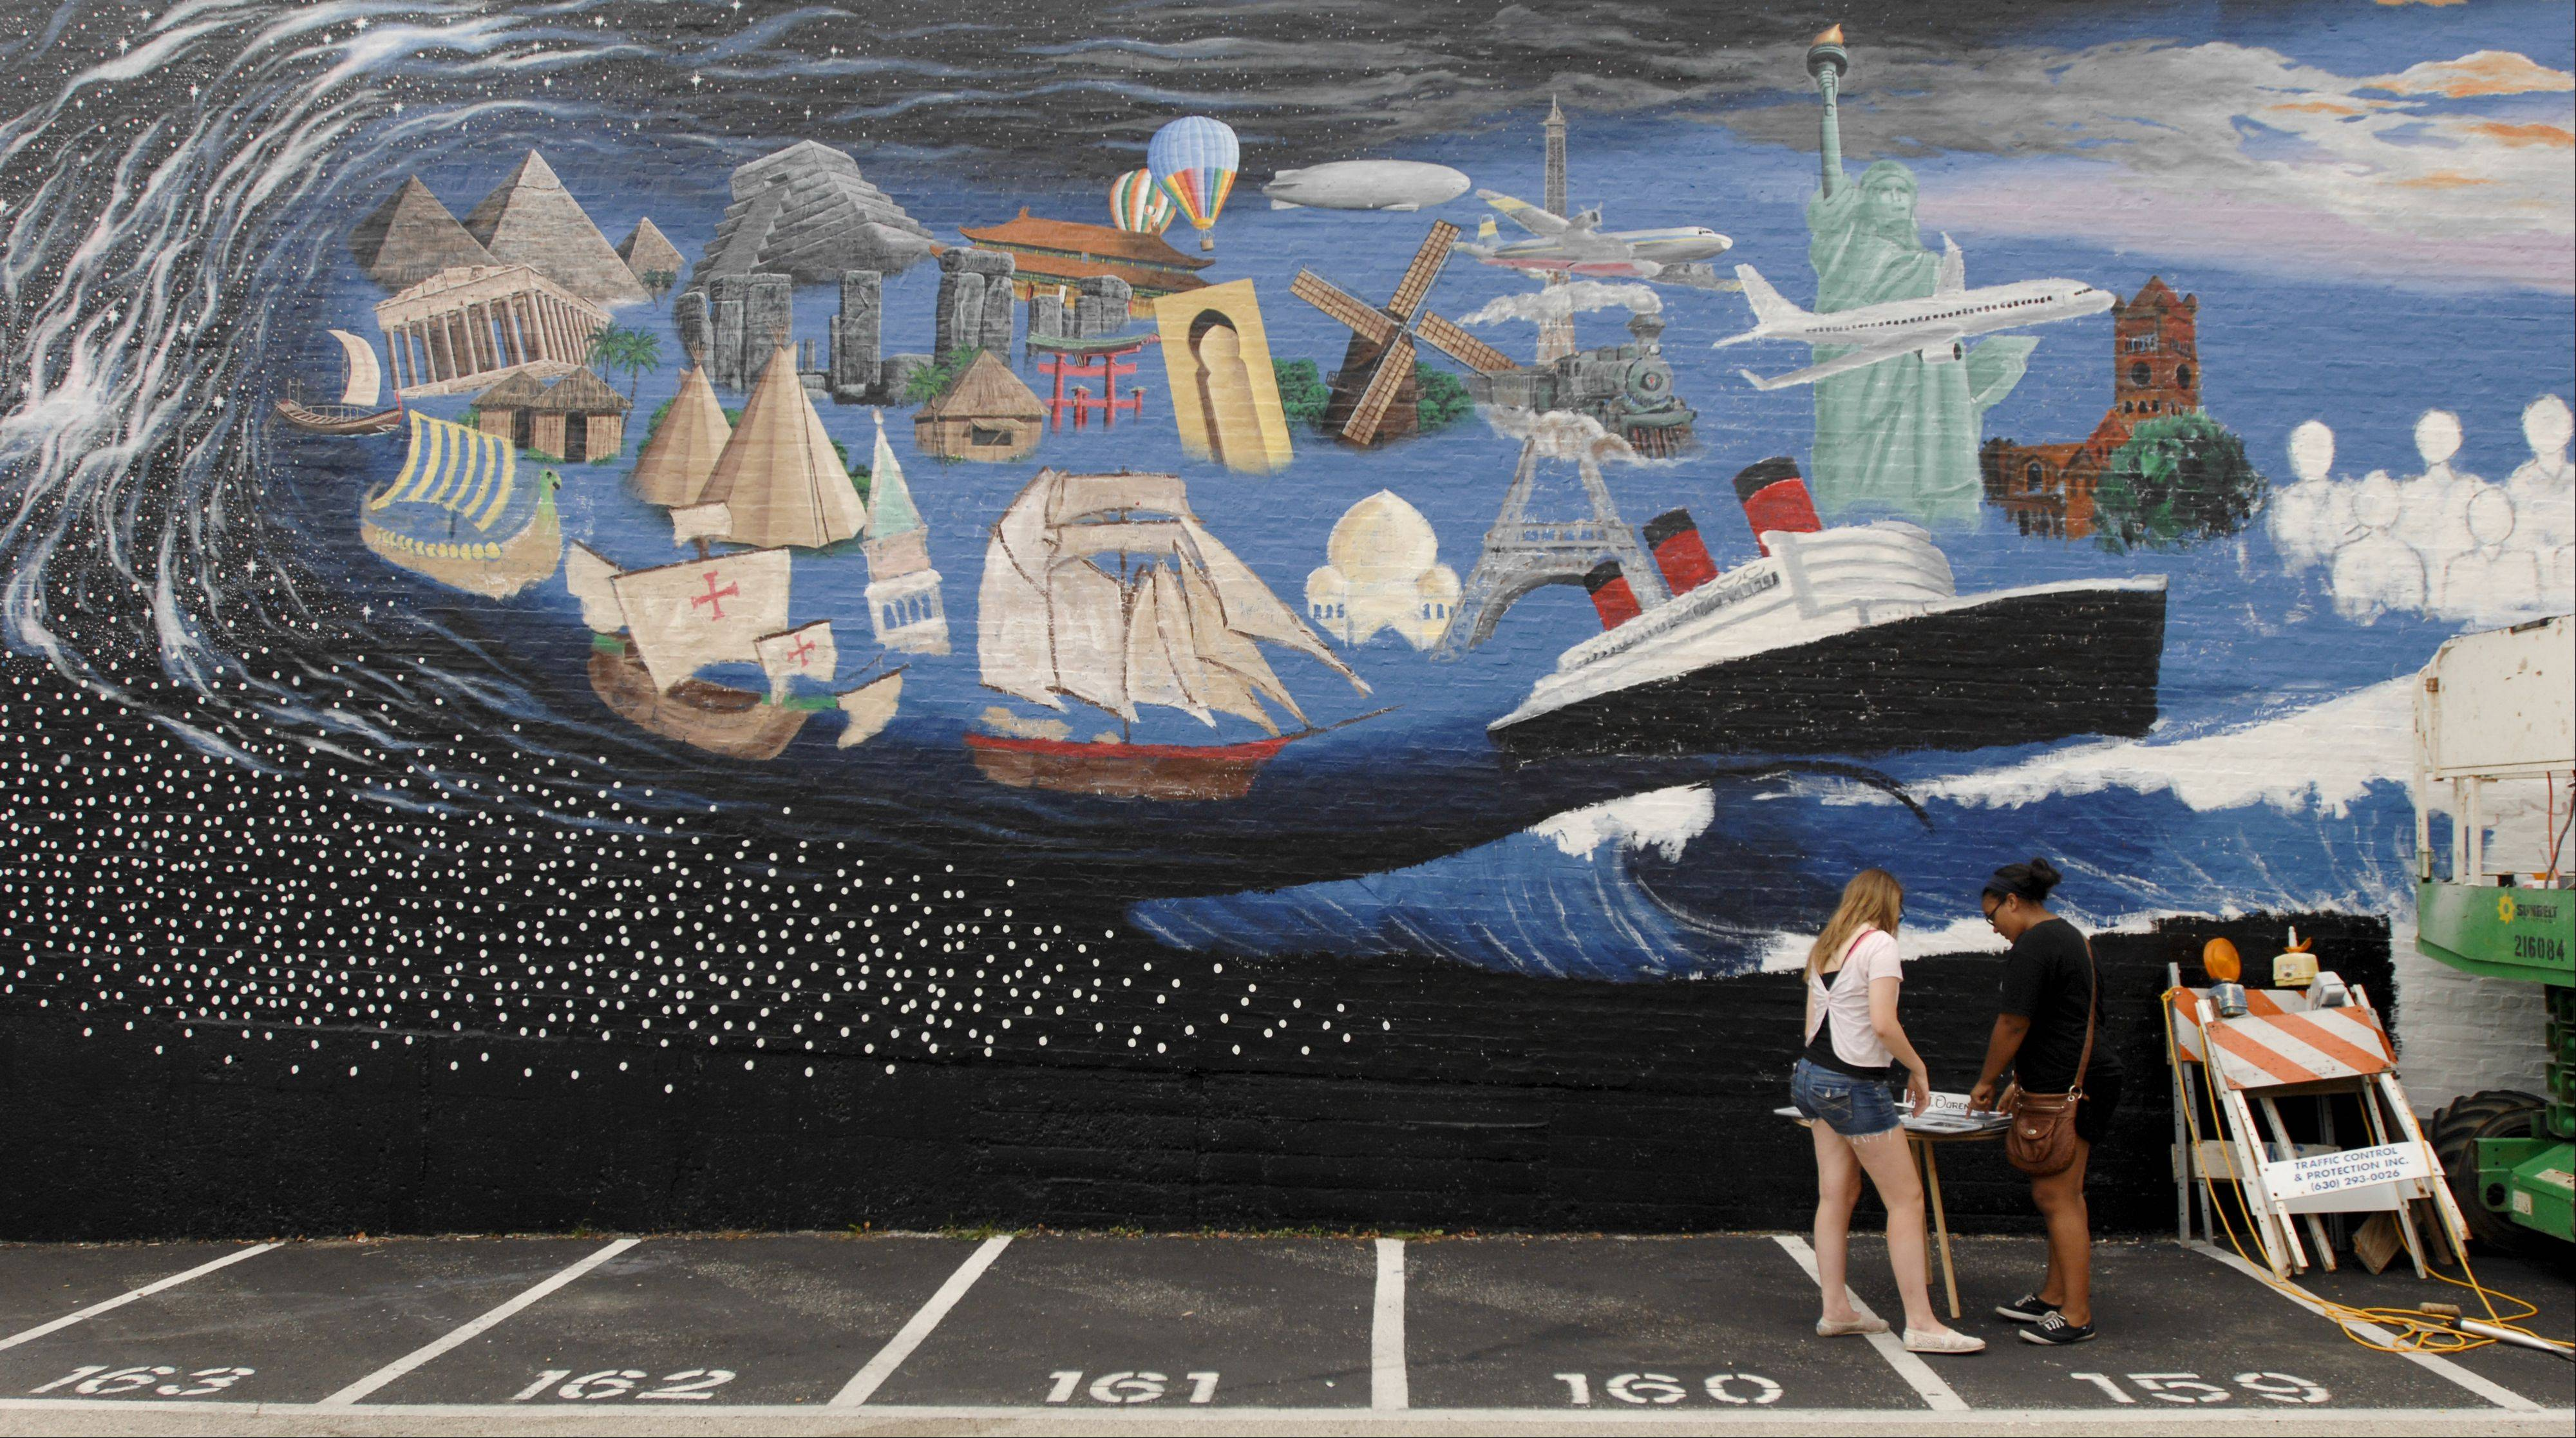 When Wheaton leaders were considering a mural to celebrate the city's diversity, they turned to Laurie Swanson Oberhelman for help.